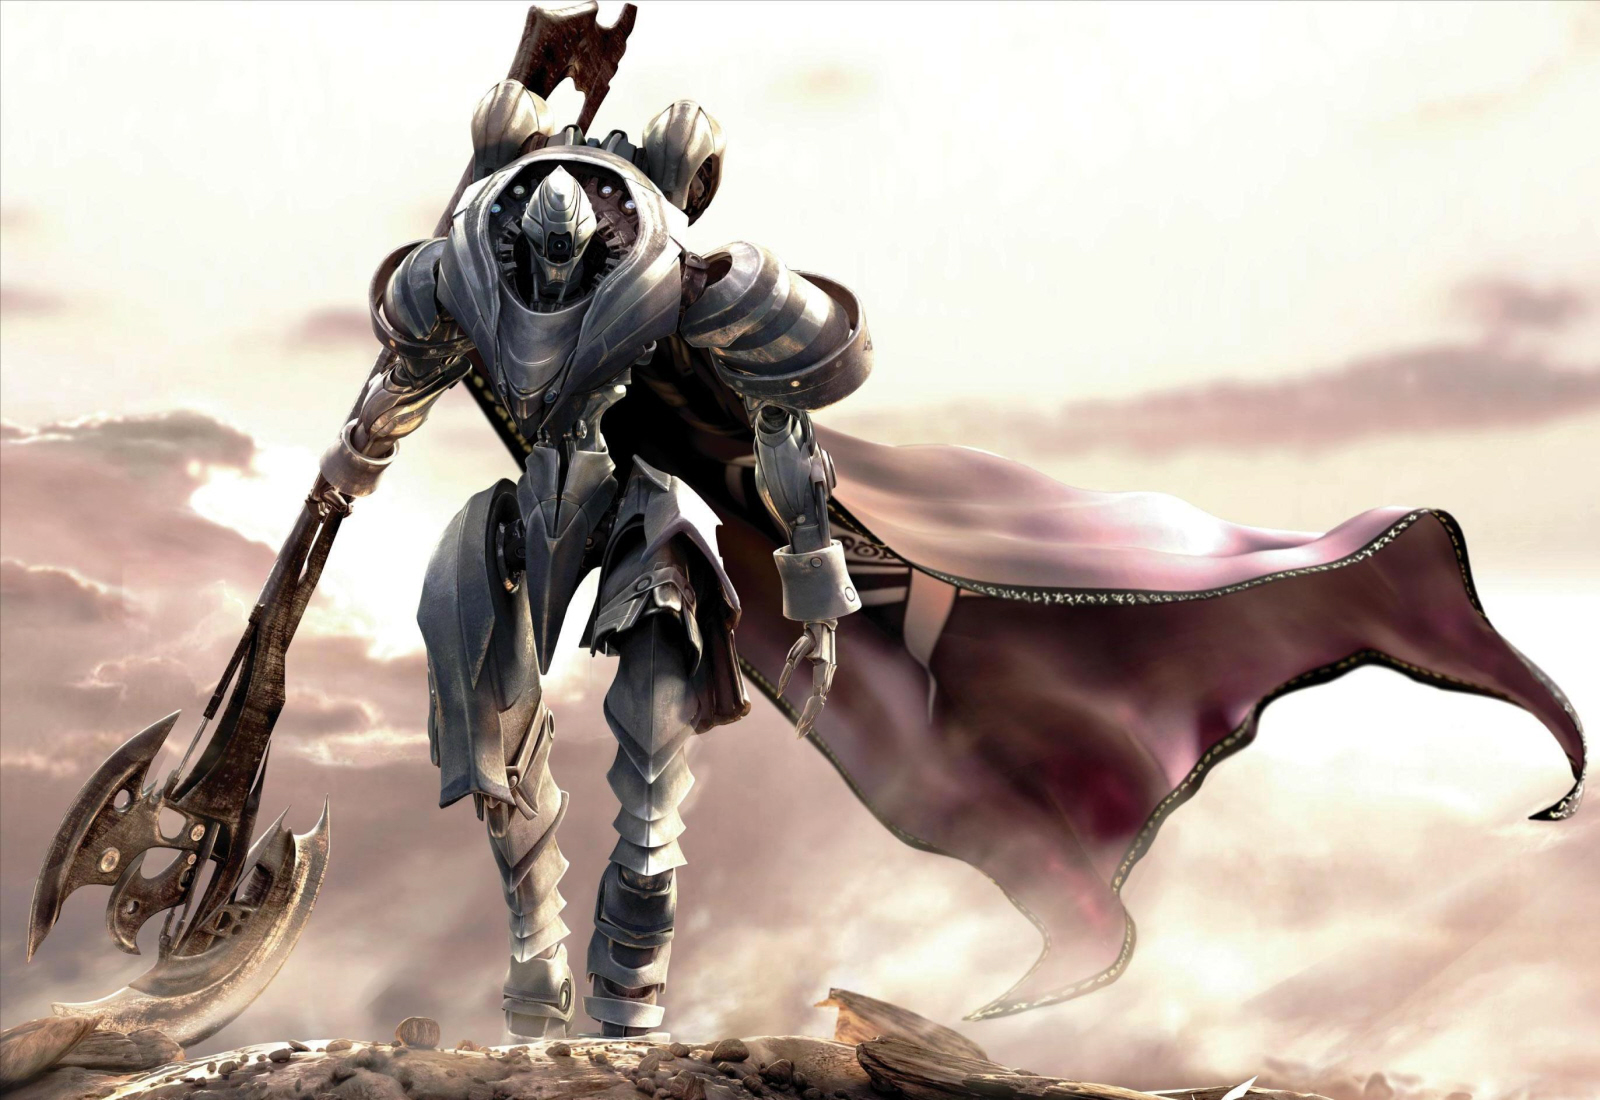 http://4.bp.blogspot.com/_CD-45cZgFN8/TAzG6jXjHJI/AAAAAAAABcM/H9SzYjcOtnI/s1600/white-knight-chronicles-wallpaper-4.jpg